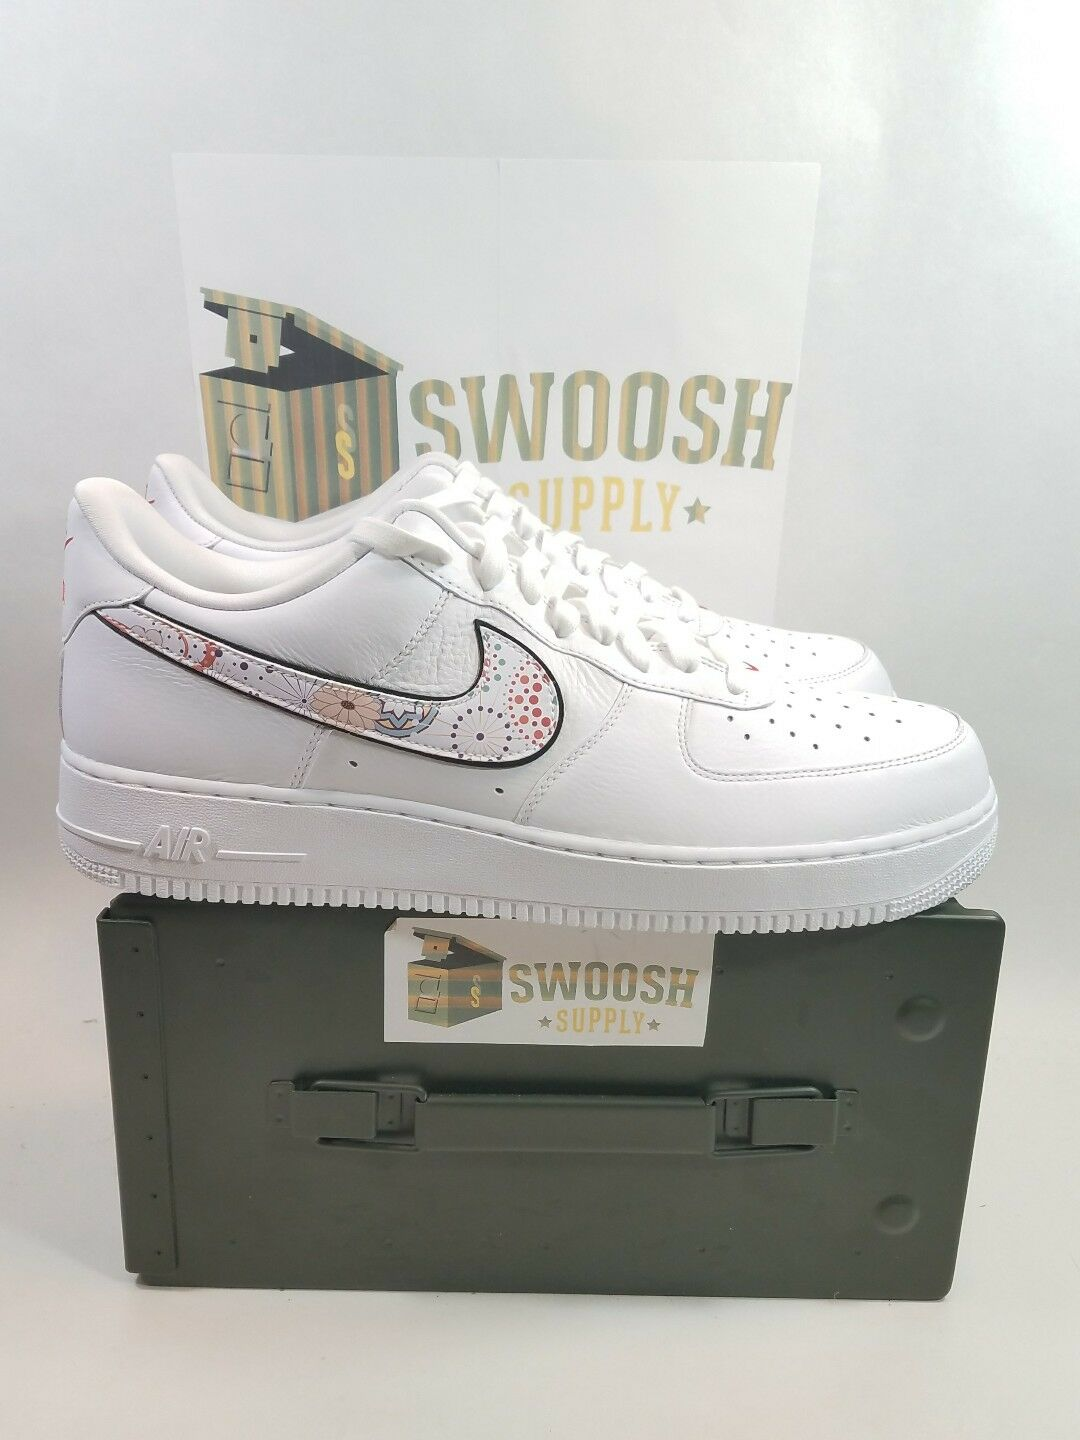 Nike Air Force 1 '07 LNY QS  Lunar New Year AO9381 100 Size 11 New